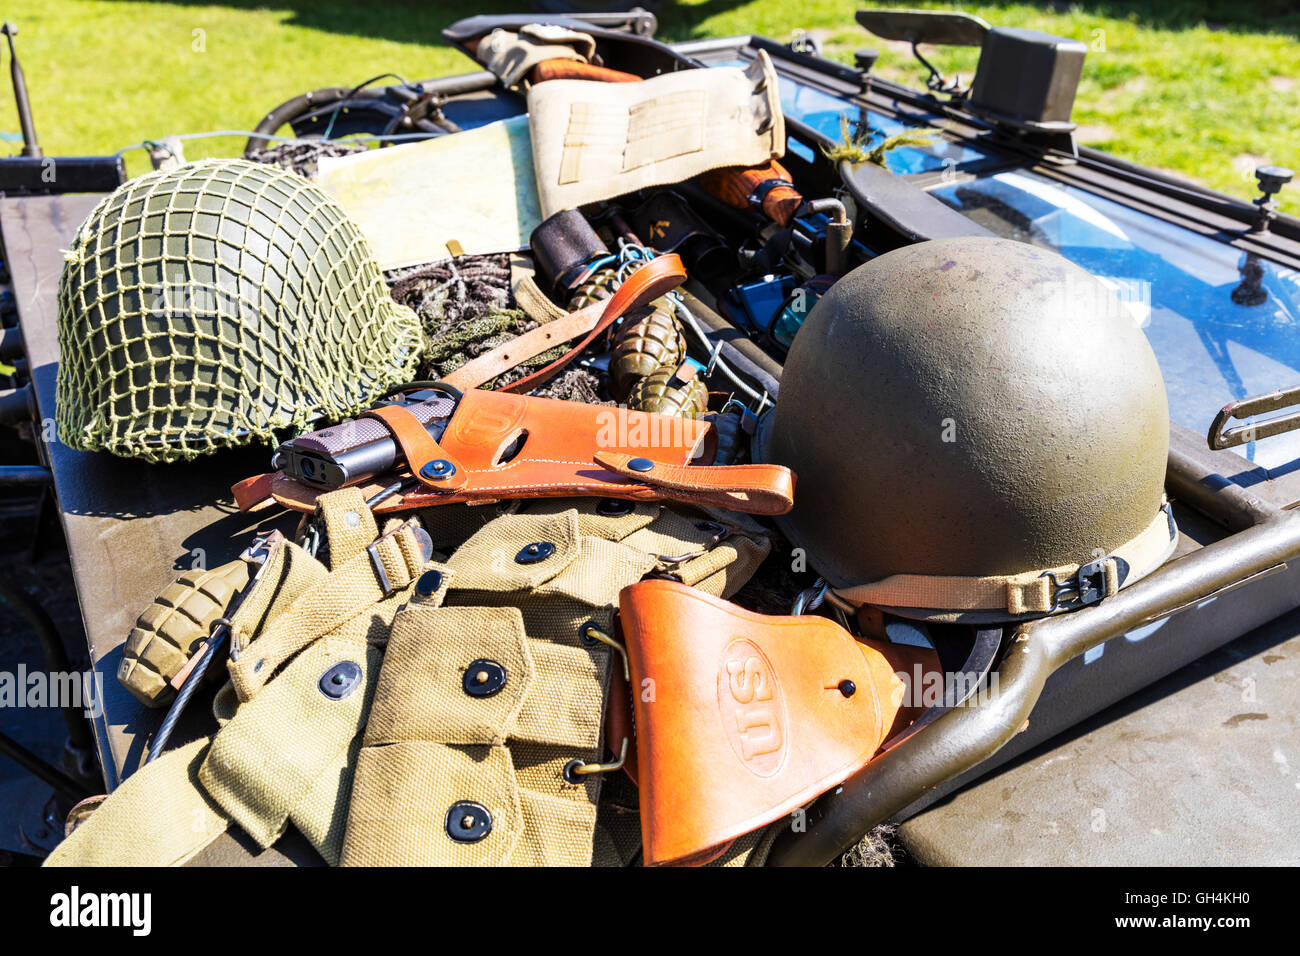 US military attire uniform hats belts weapons WW2 war wartime gear dress style vintage grenade USA American America - Stock Image